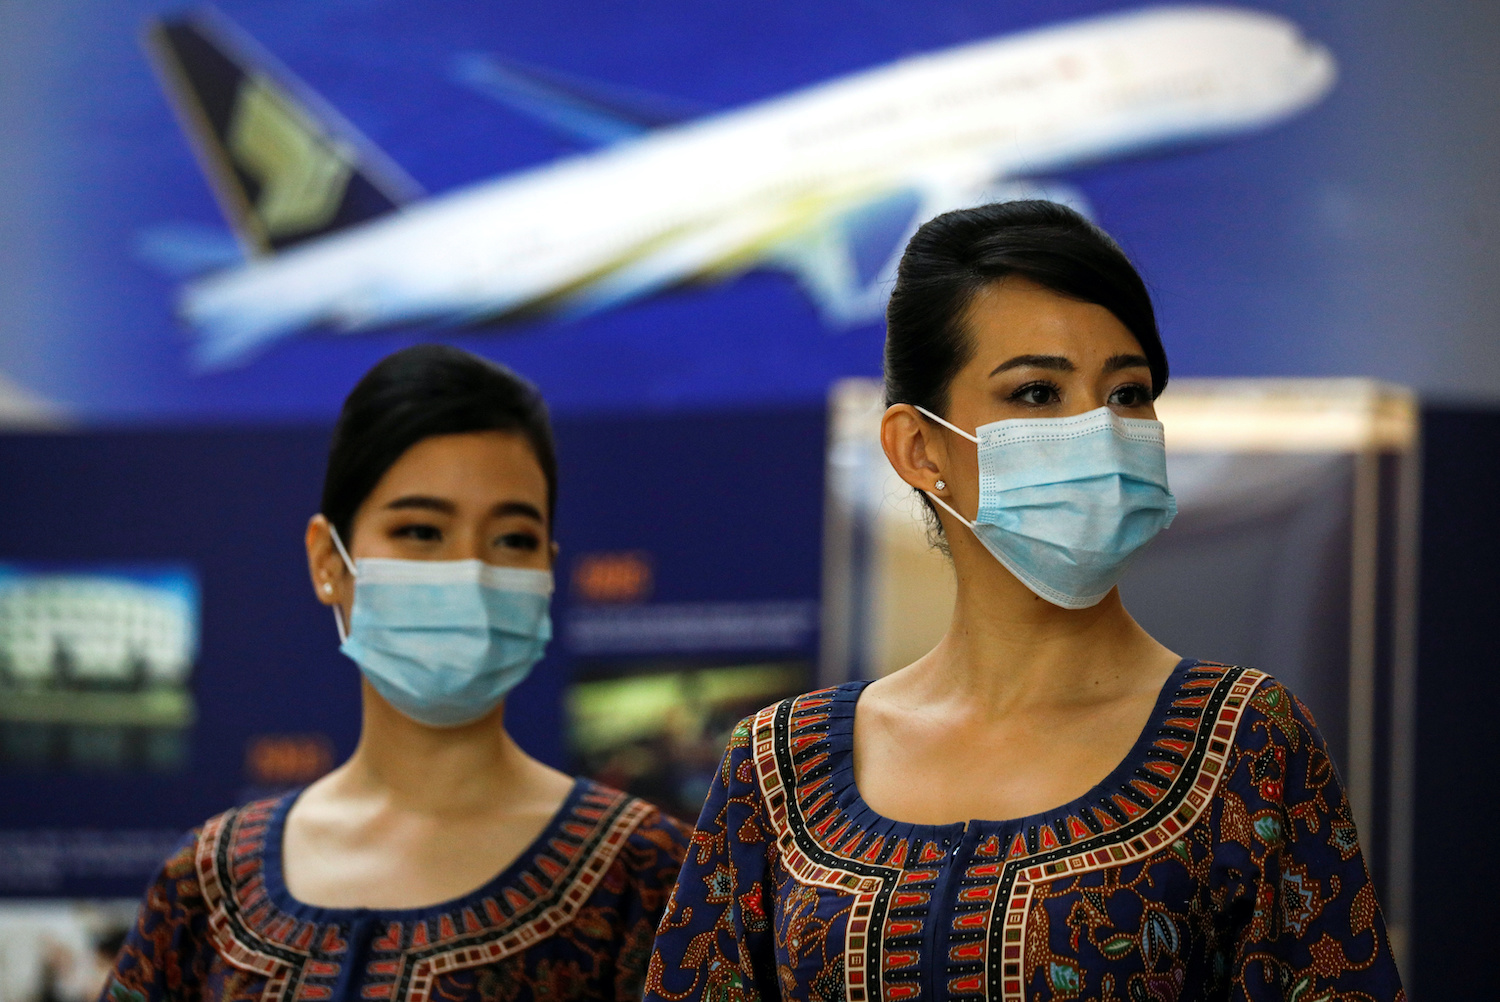 Cabin crew wait for participants during a guided tour at the Singapore Airlines Training Centre in Singapore in November. (Reuters Photo)